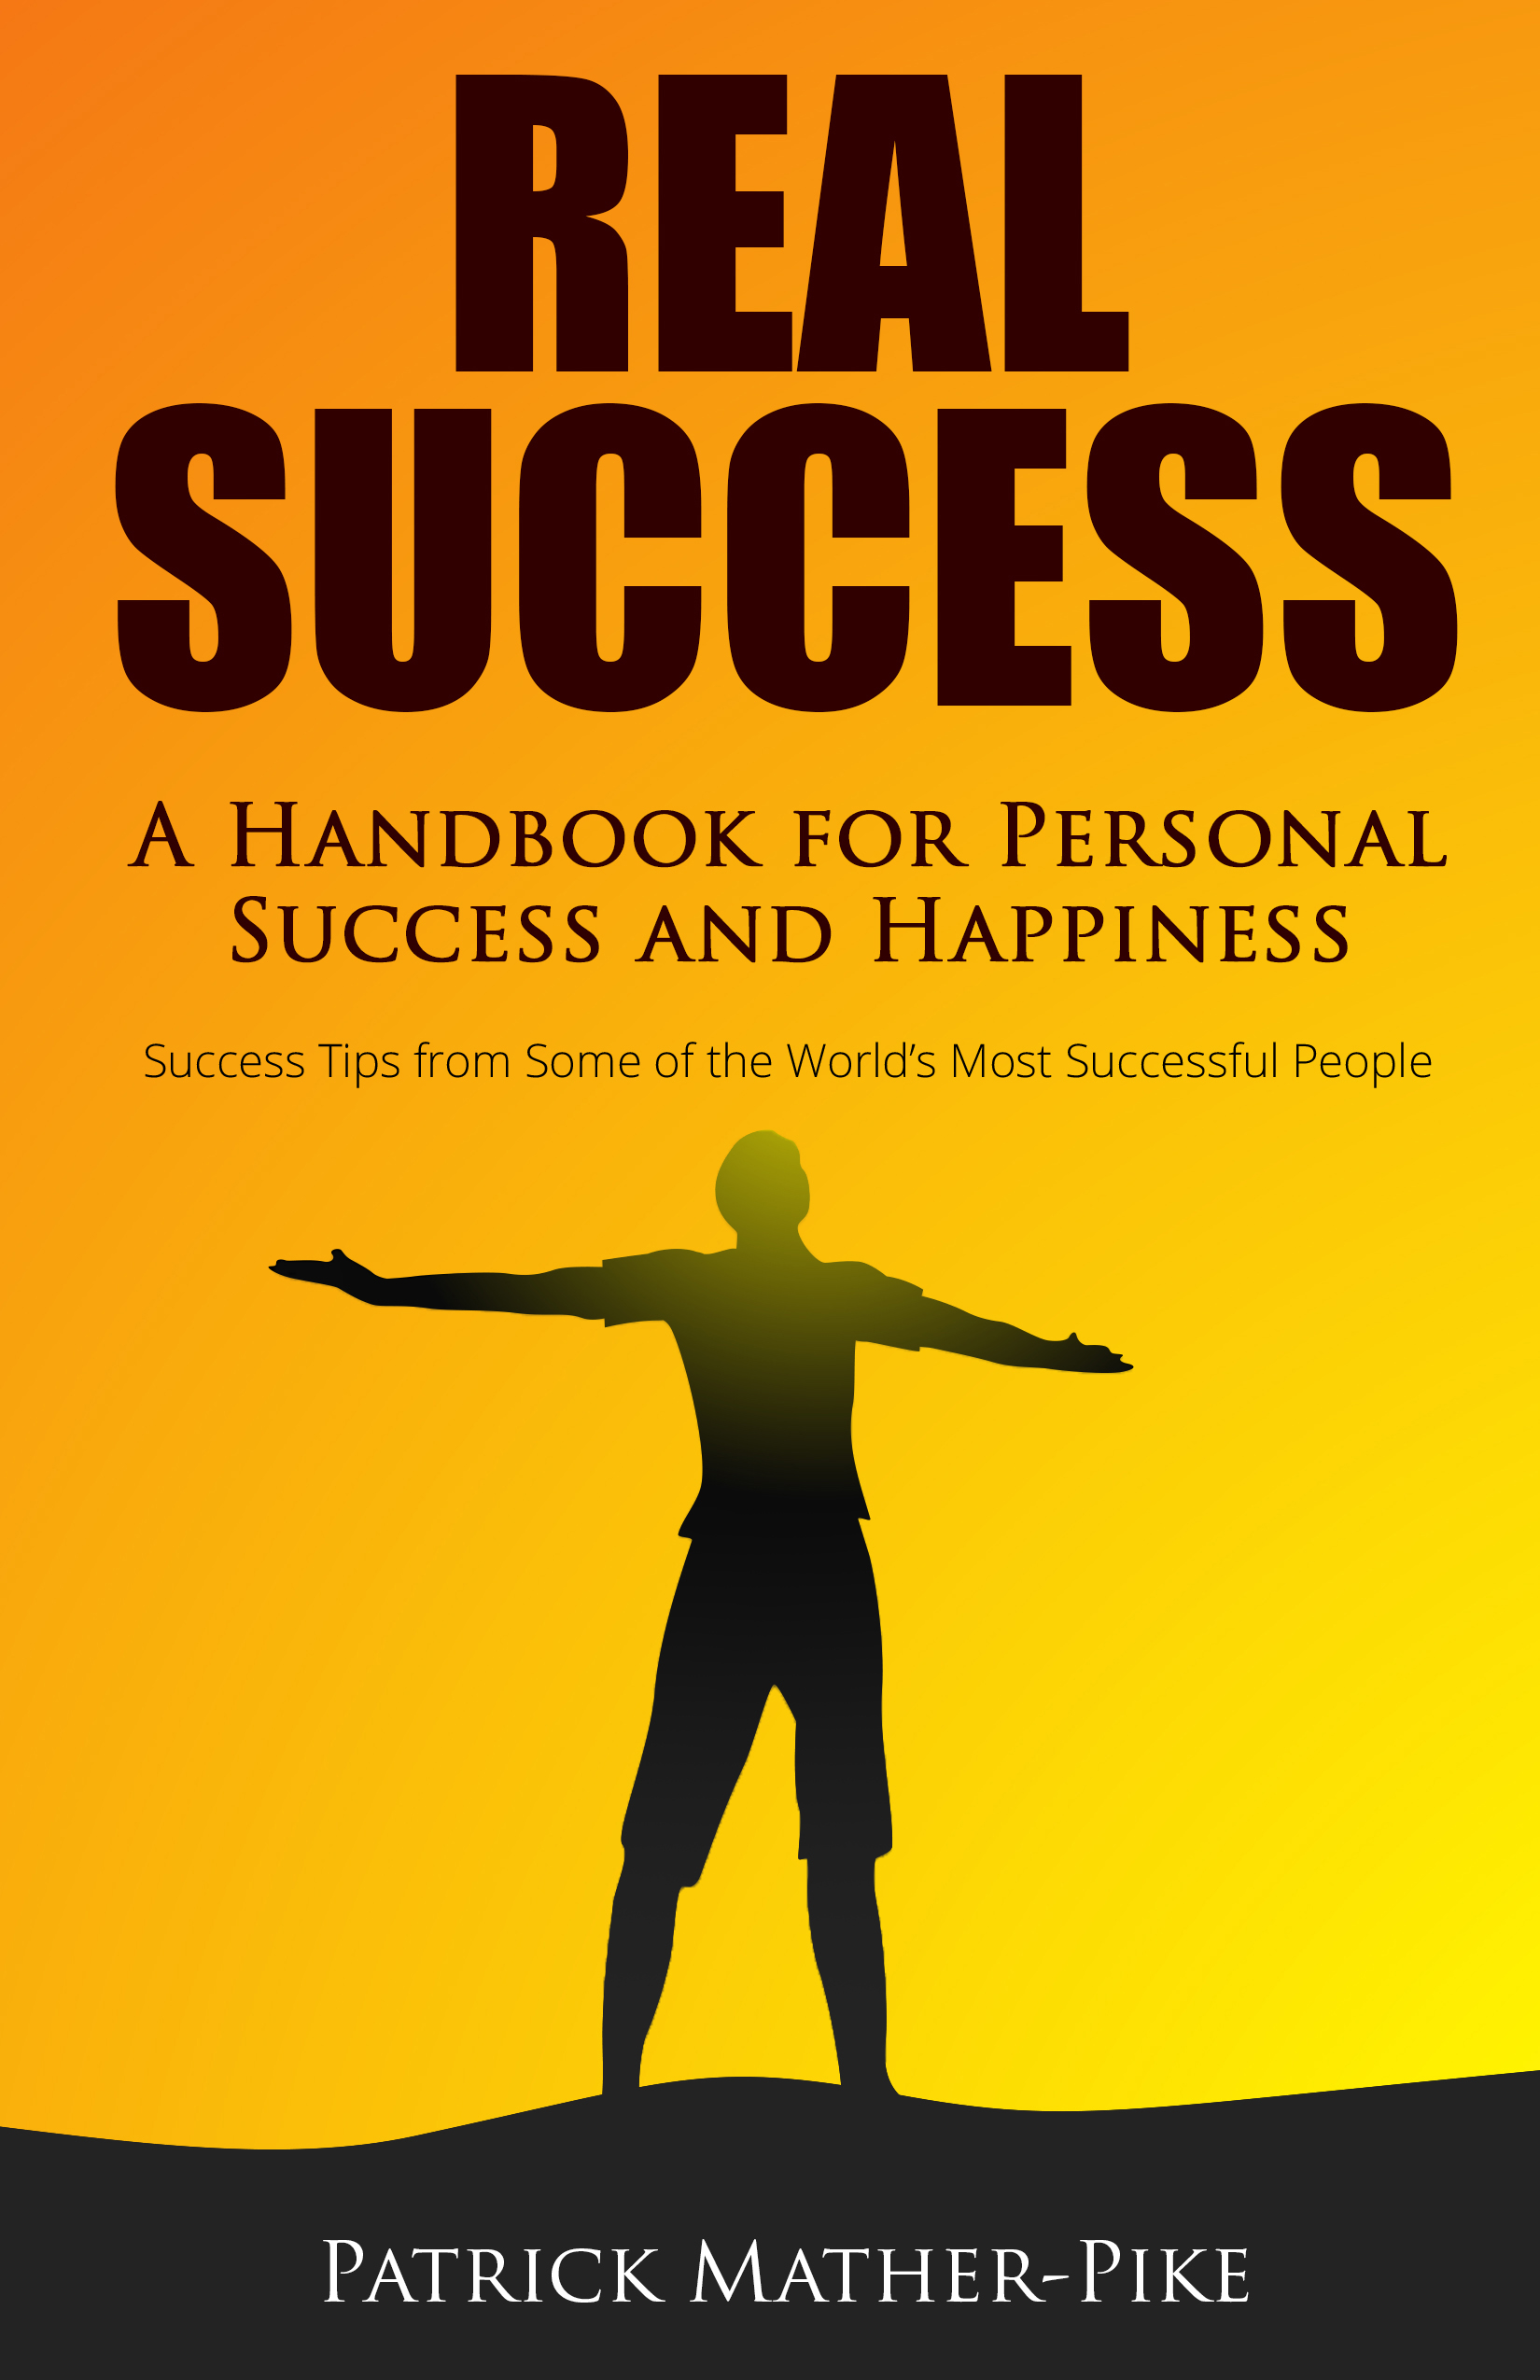 Real Success - Patrick Mather-Pike